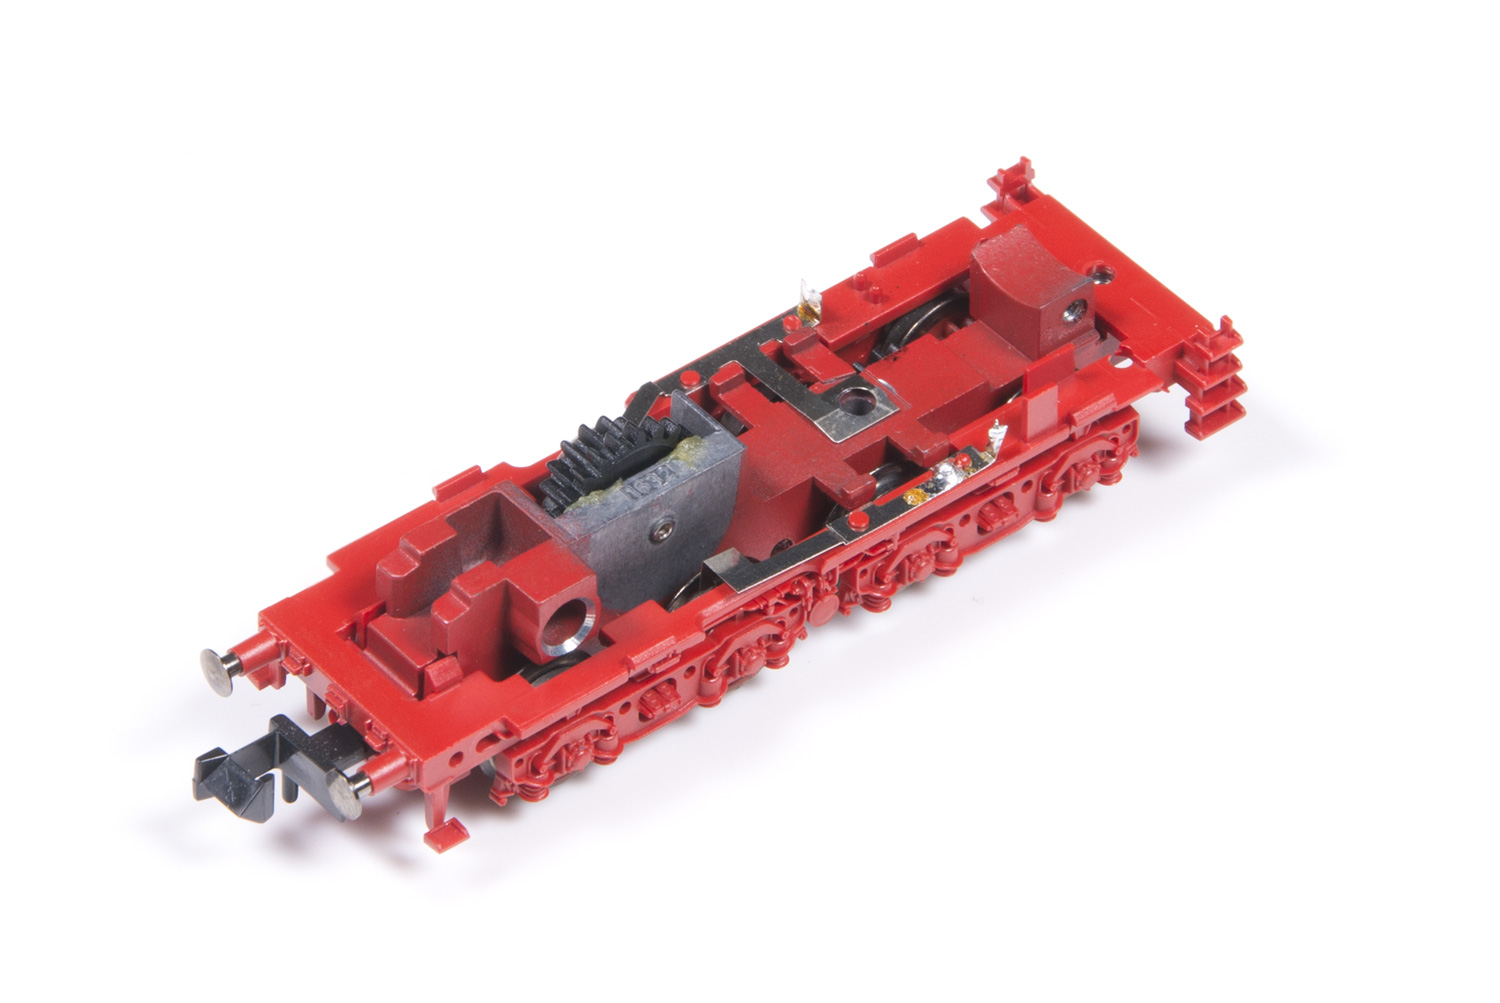 Chassis des Tenders